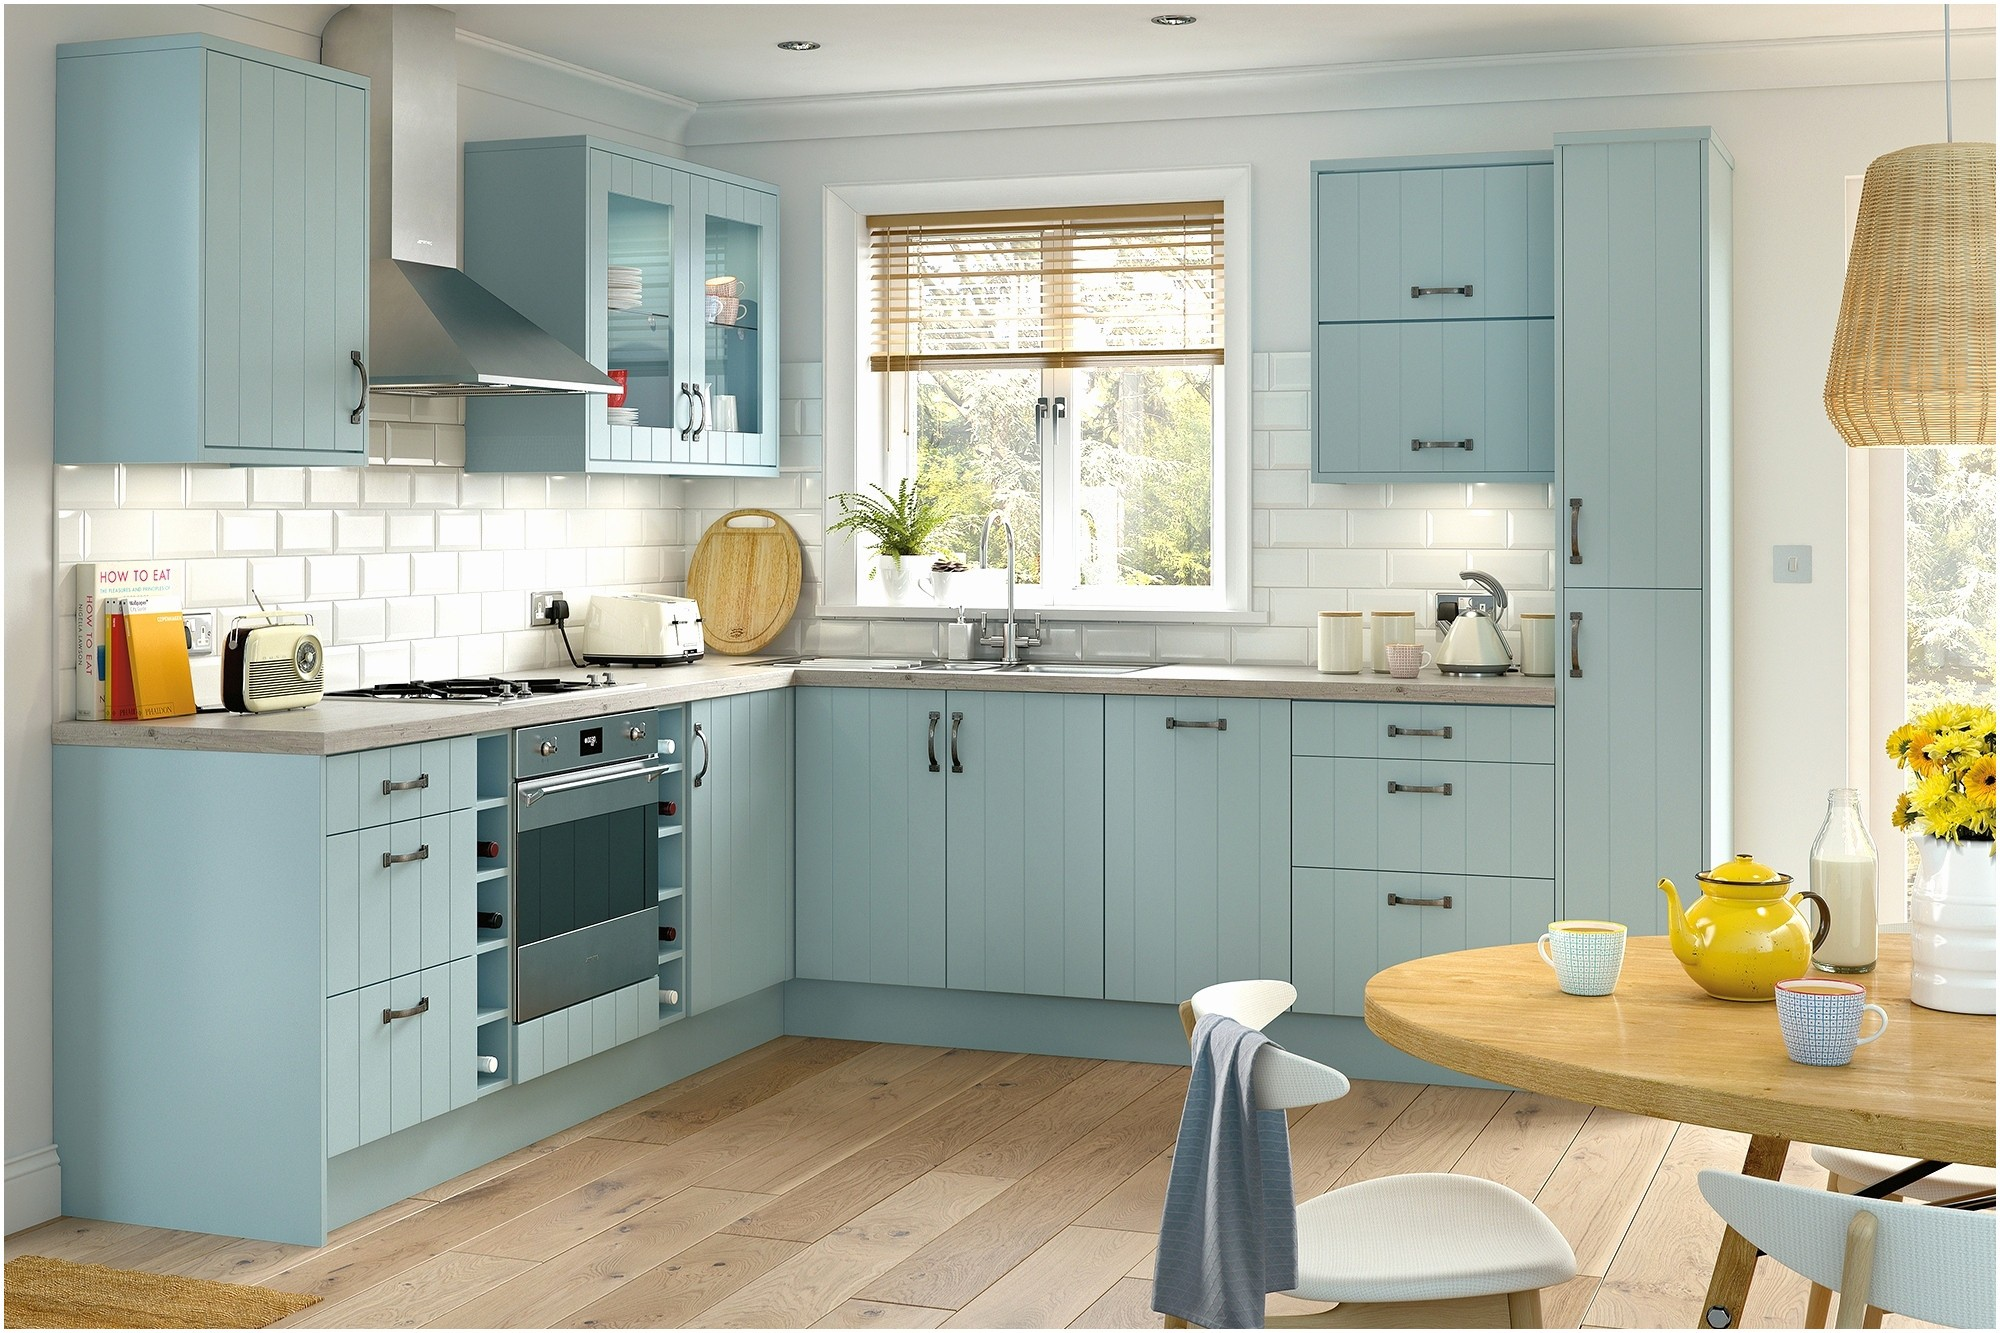 Kitchen Styles and Designs Exquisite Kitchens Ideas Kitchen Design 0d Design Kitchen Ideas